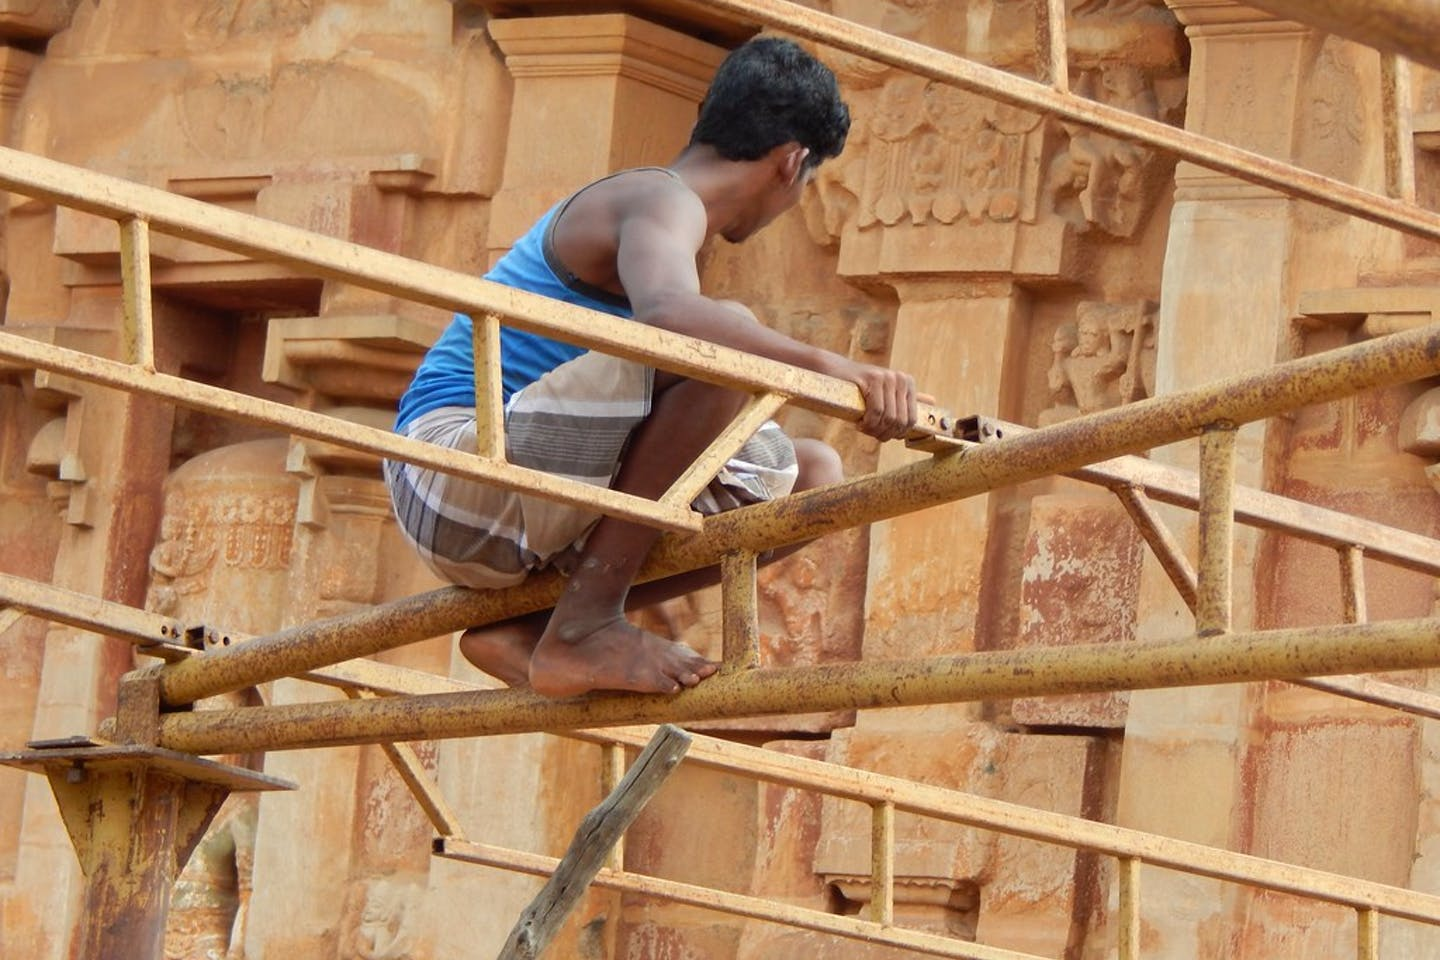 Construction worker in India